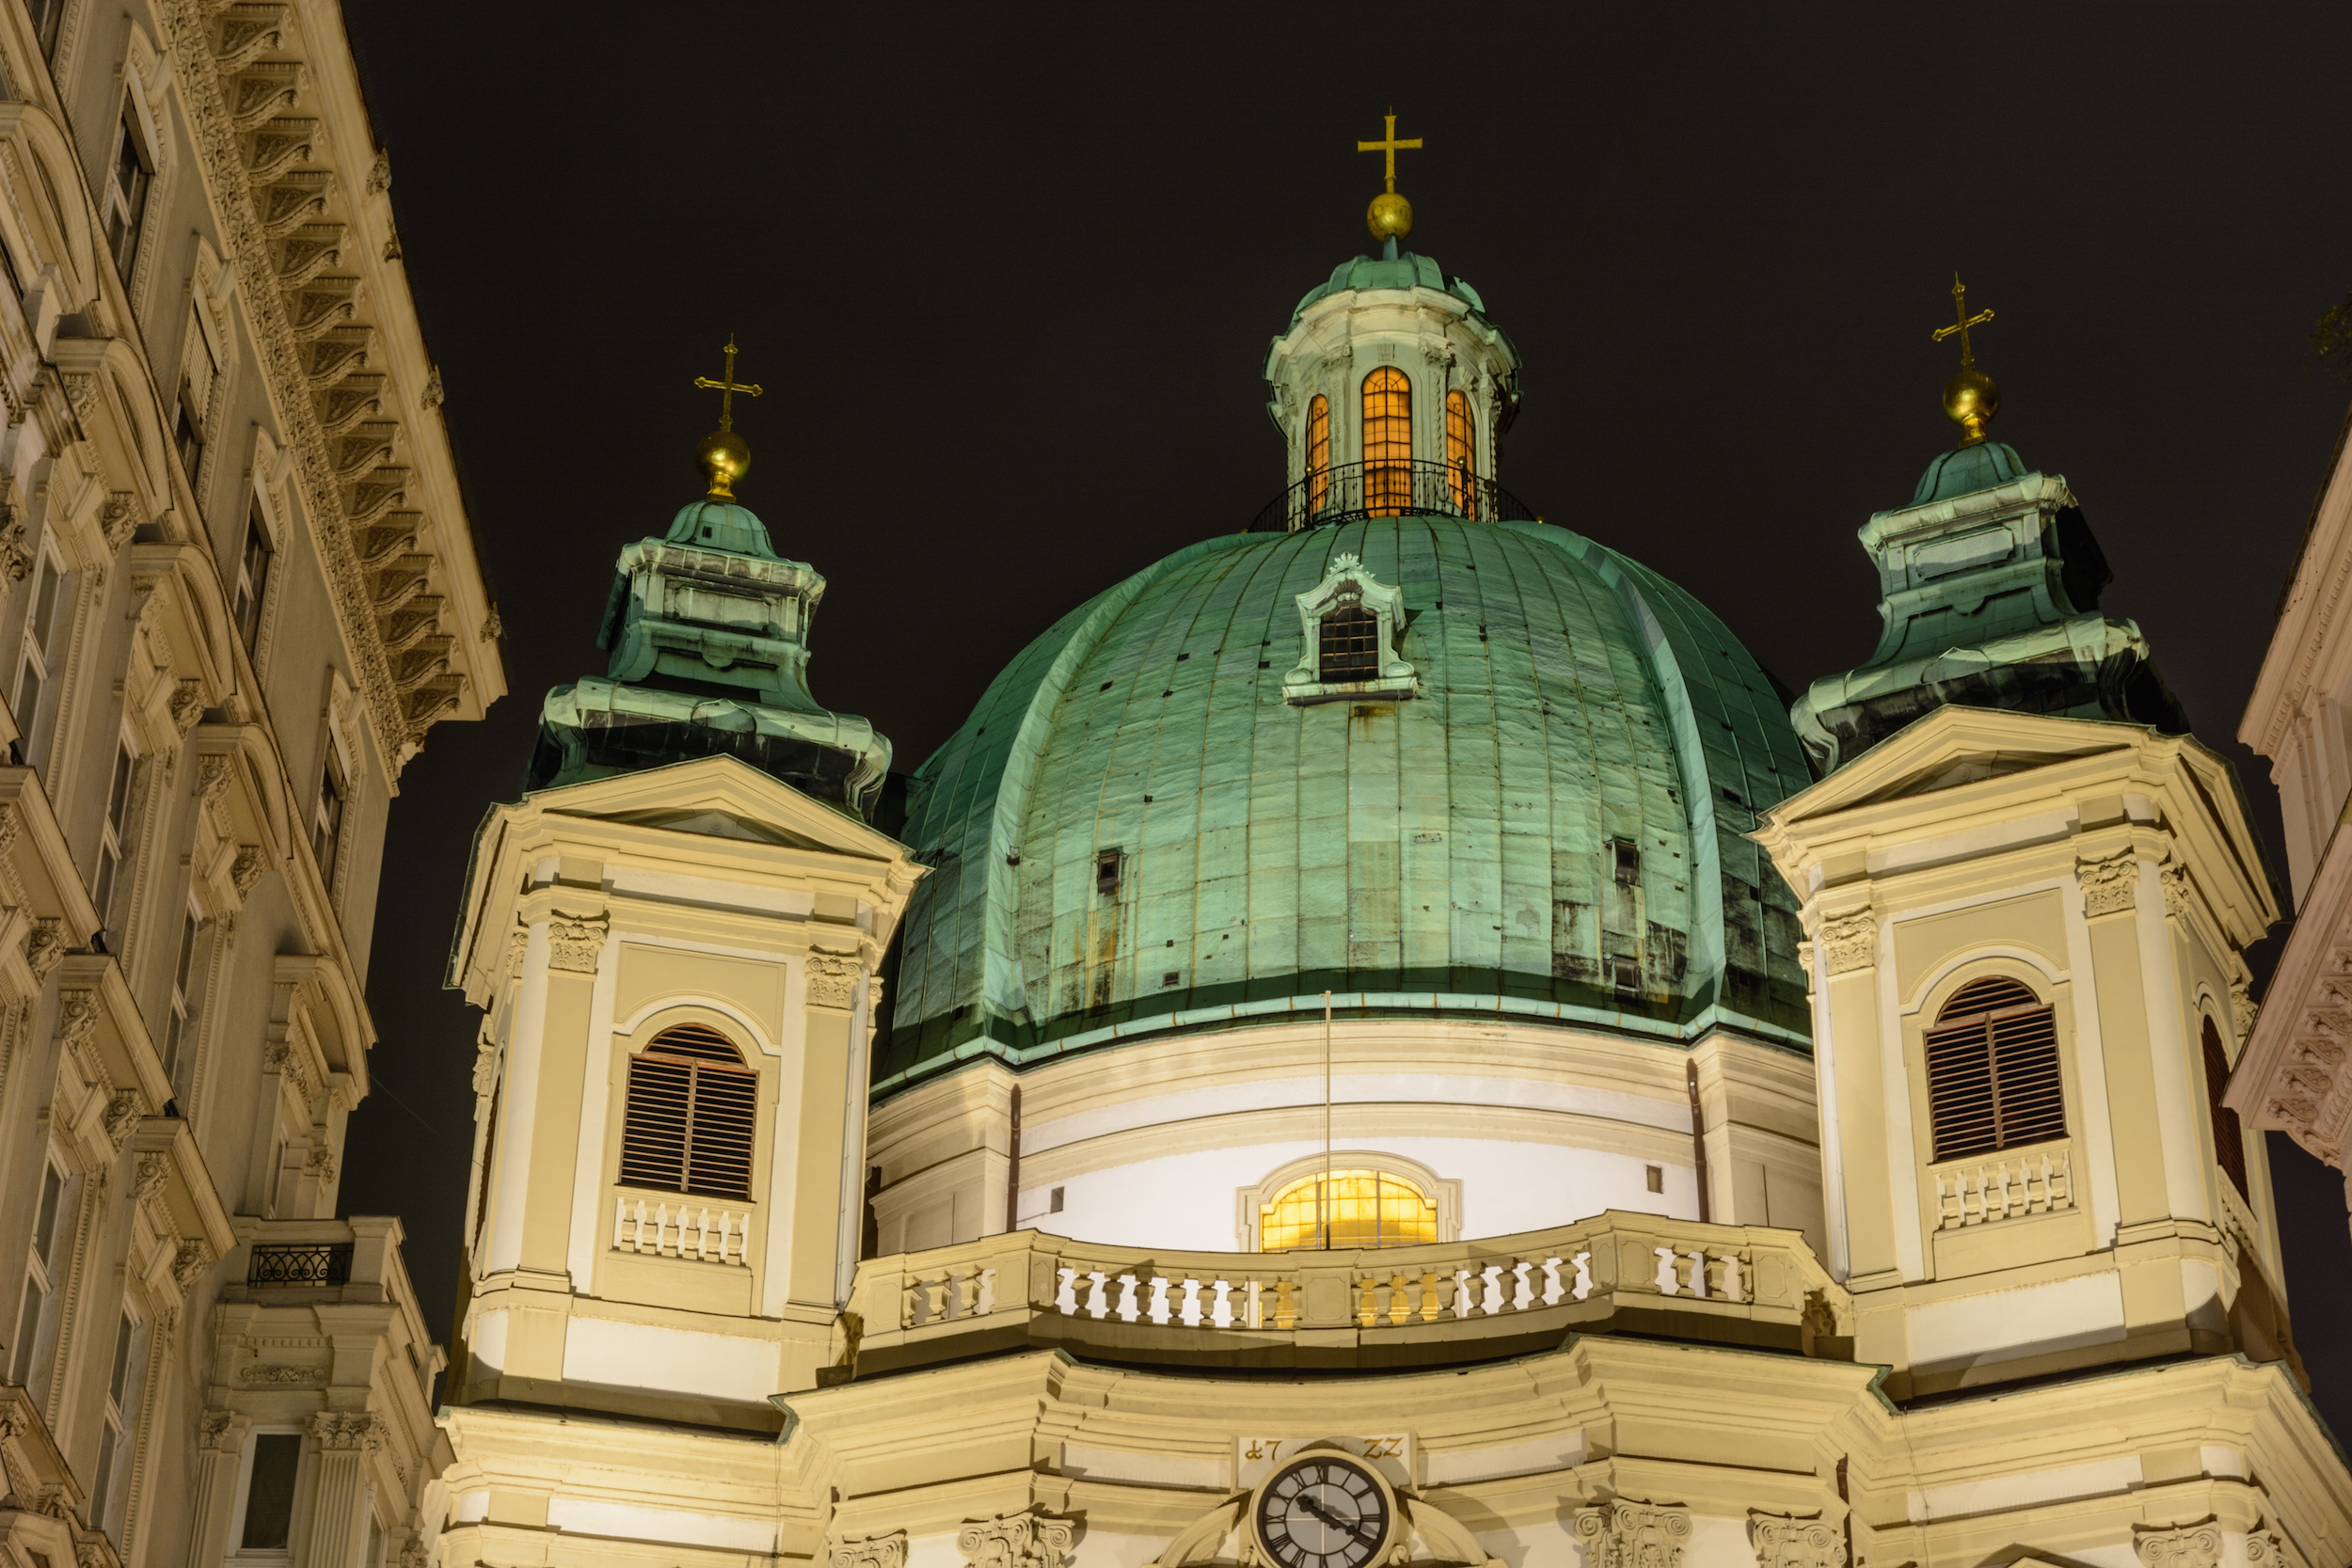 Vienna at night – discover the beauty